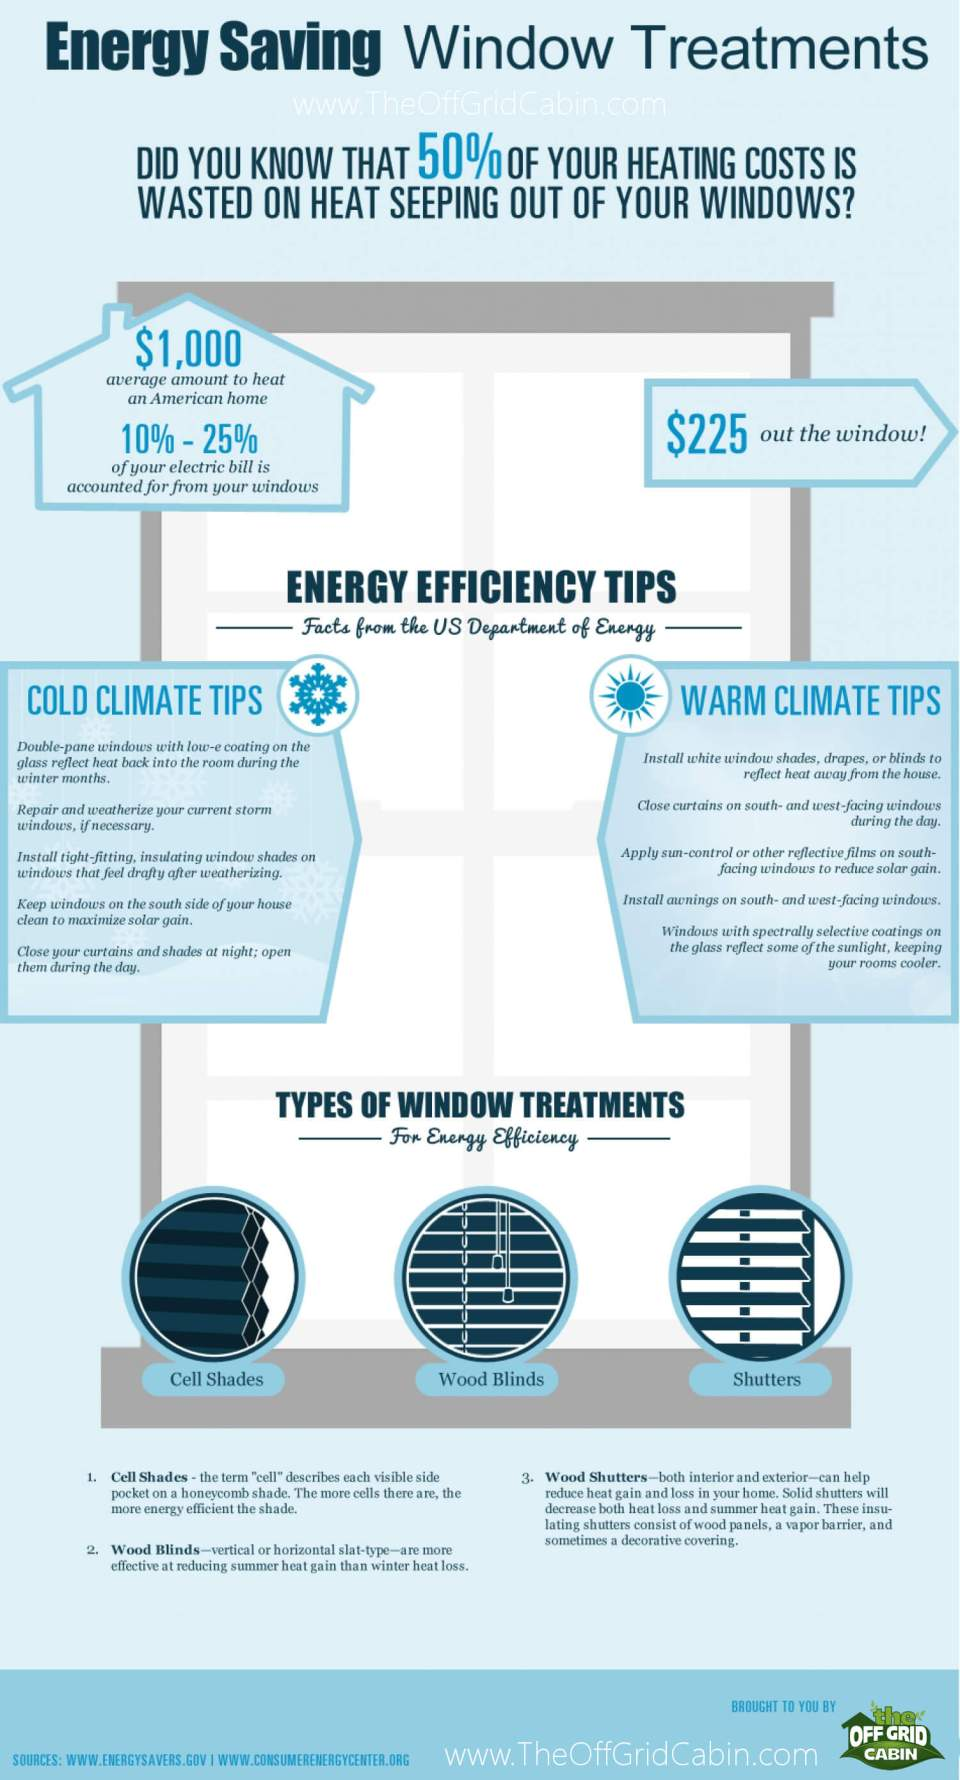 11 Essential Factors When Choosing Off Grid Windows and Doors